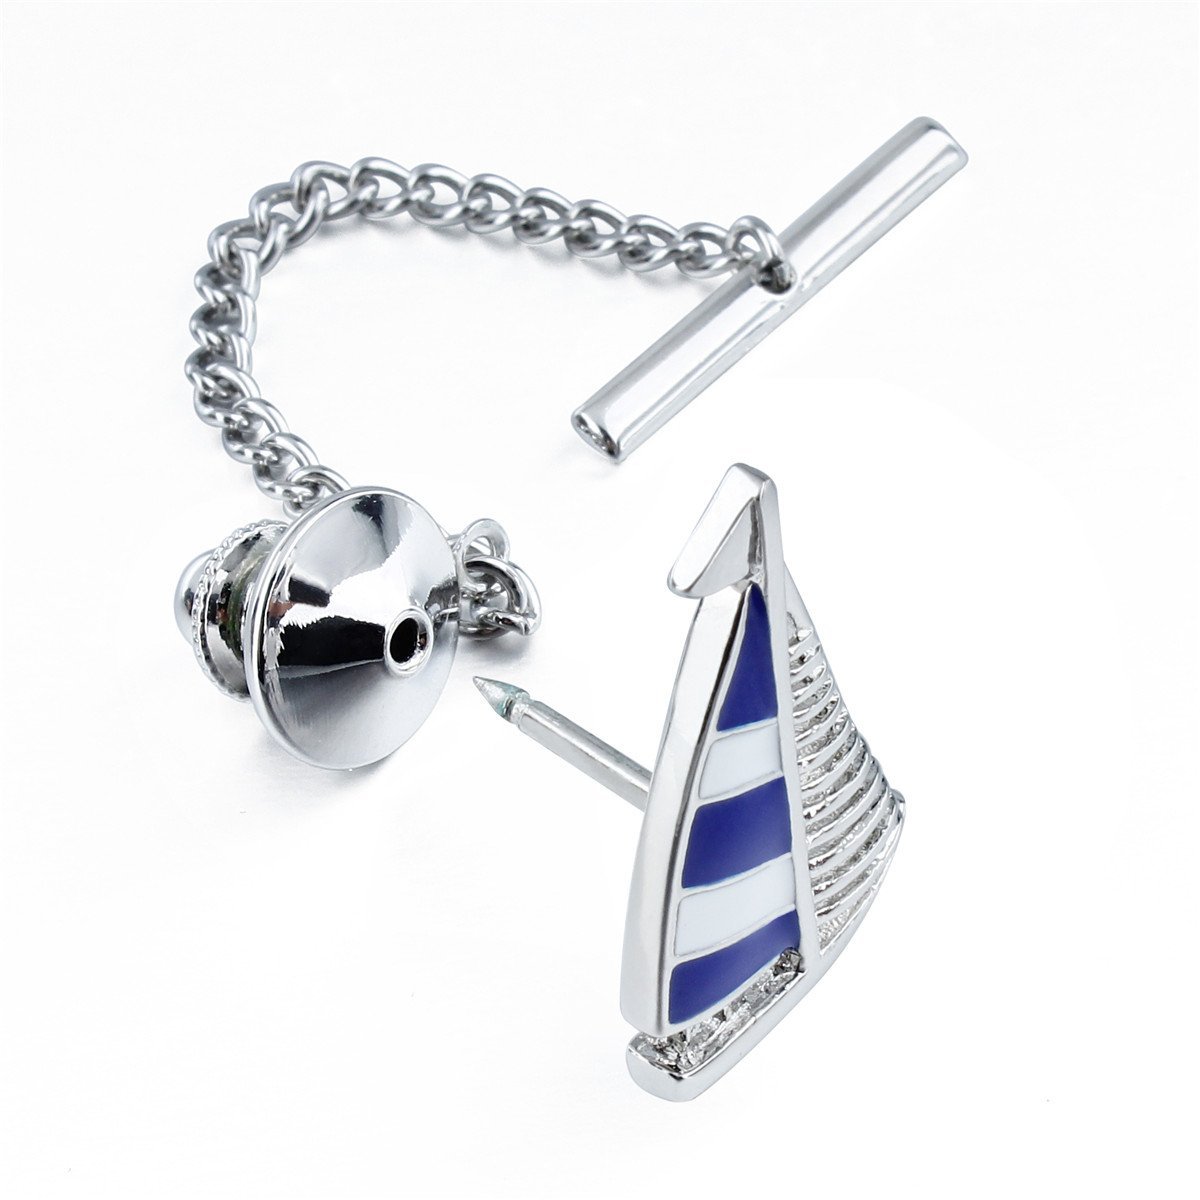 HAWSON Blue Tie Clip Tie Tack with Clucth Back Wedding Party Accessories - Sailing Boat Shape by HAWSON (Image #2)